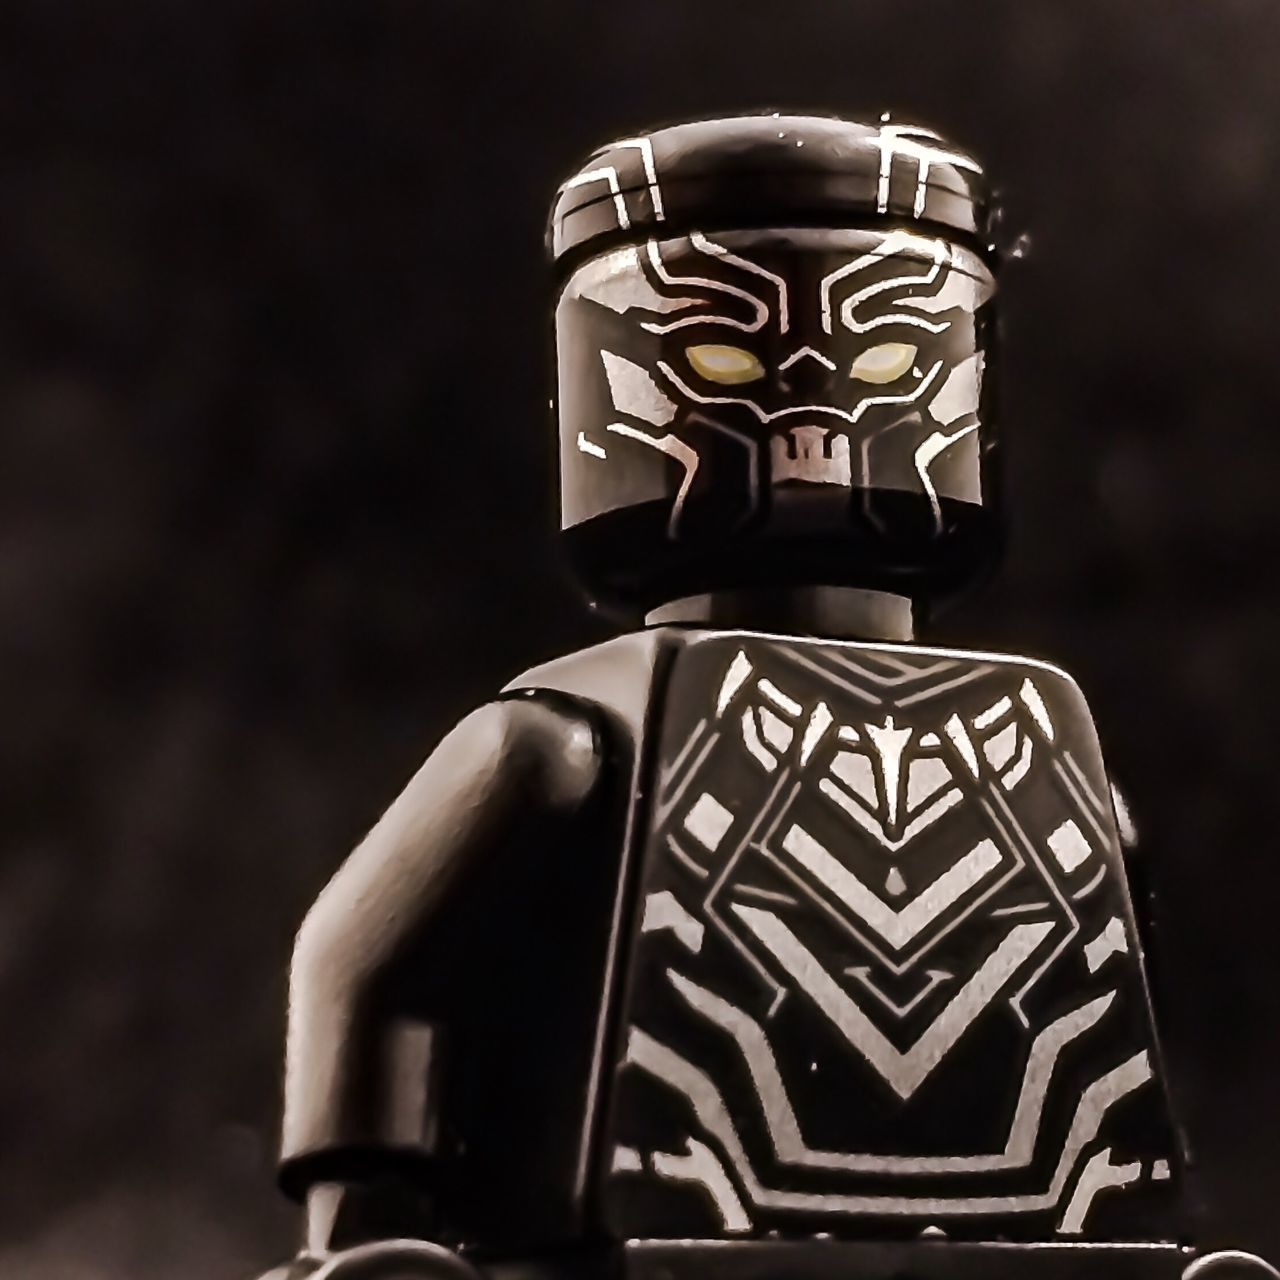 Black Panther. Toy Photography Toy Lego Minifigures Lego Photography LEGO Lightbox Marvel Lego Marvel Captain America Black Panther